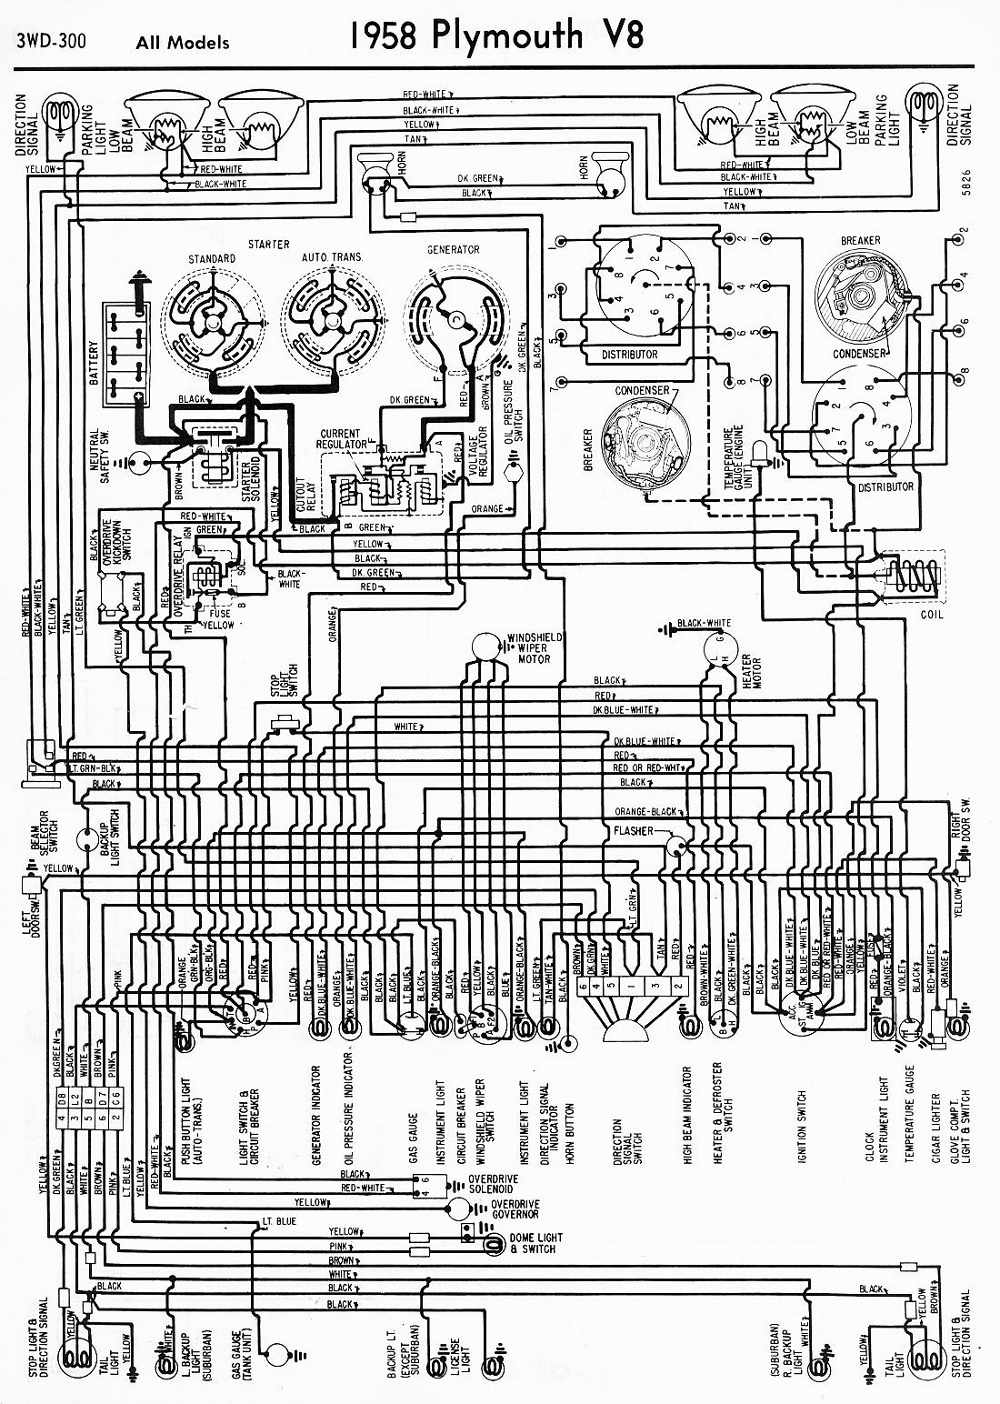 1958 Plymouth Wiring Diagram Trusted Diagrams 72 Radio Schematics U2022 Rh Seniorlivinguniversity Co Chevy 350 Starter